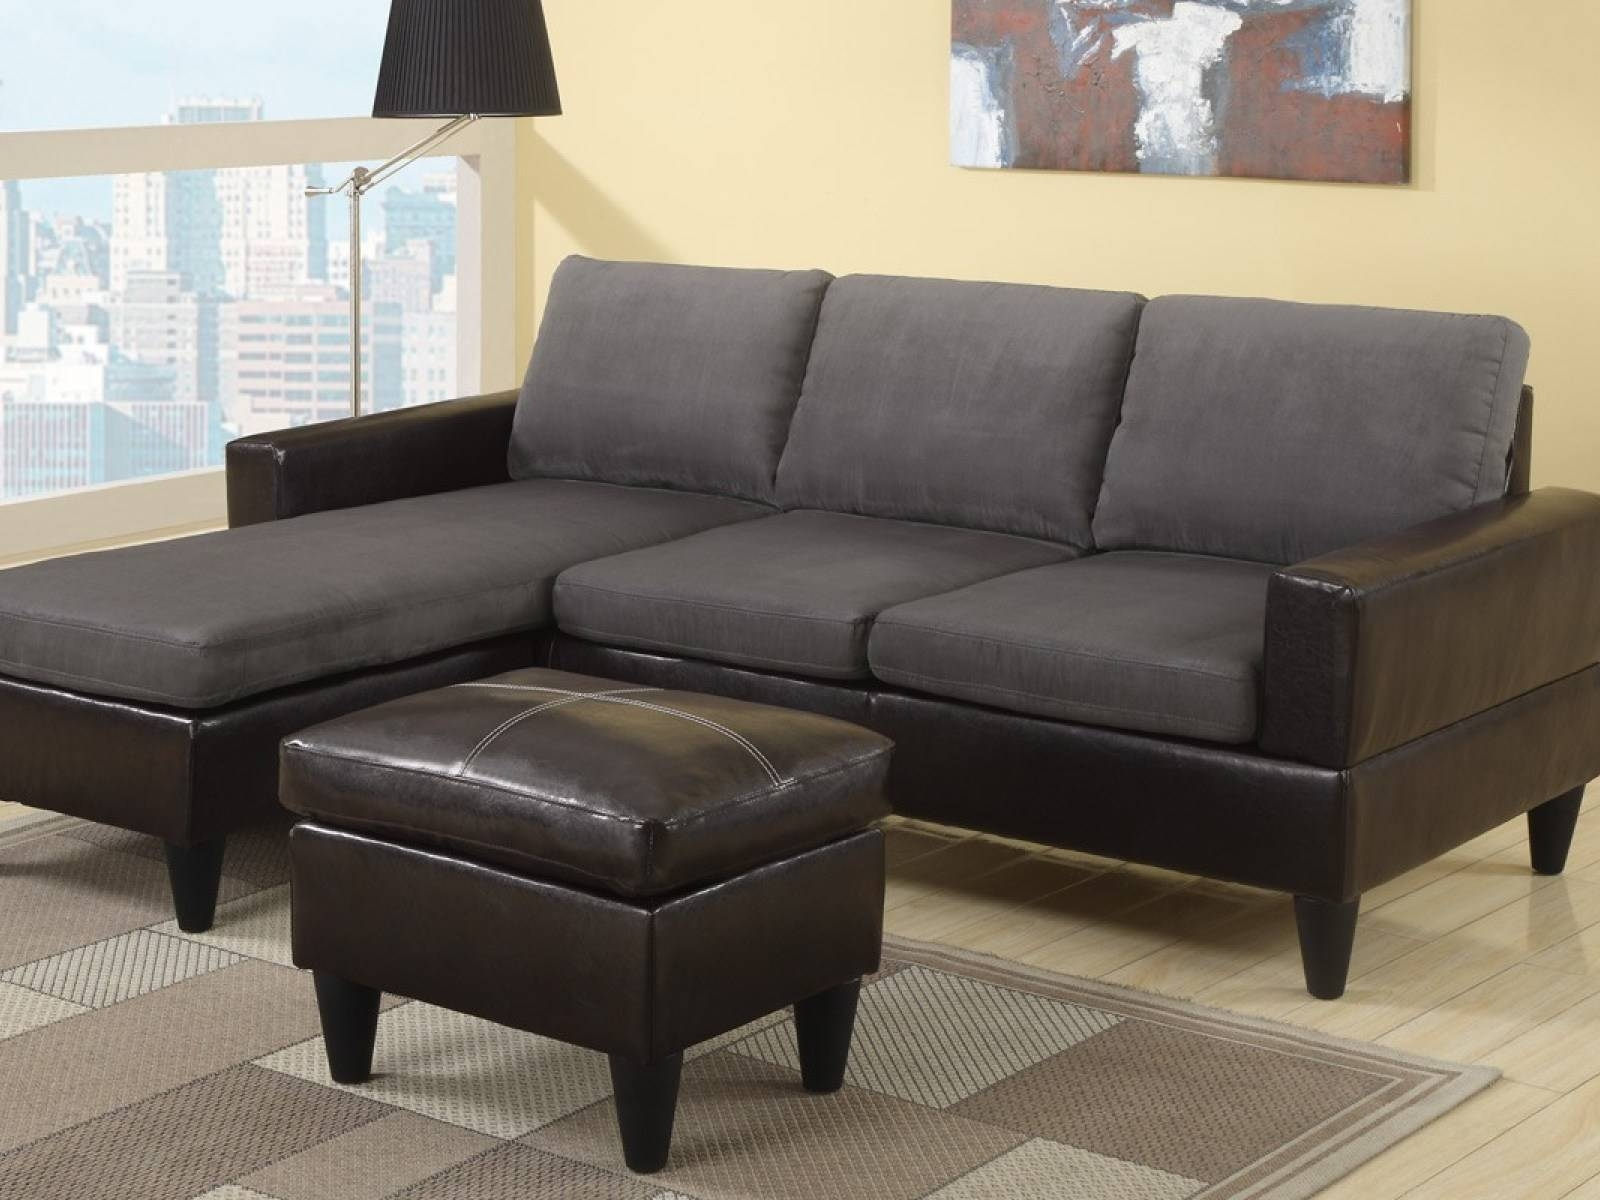 ▻ Sofa : 36 Fabulous Small Leather Sectional Sofas 4 Benefits Of within Small Sectional Sofa (Image 30 of 30)